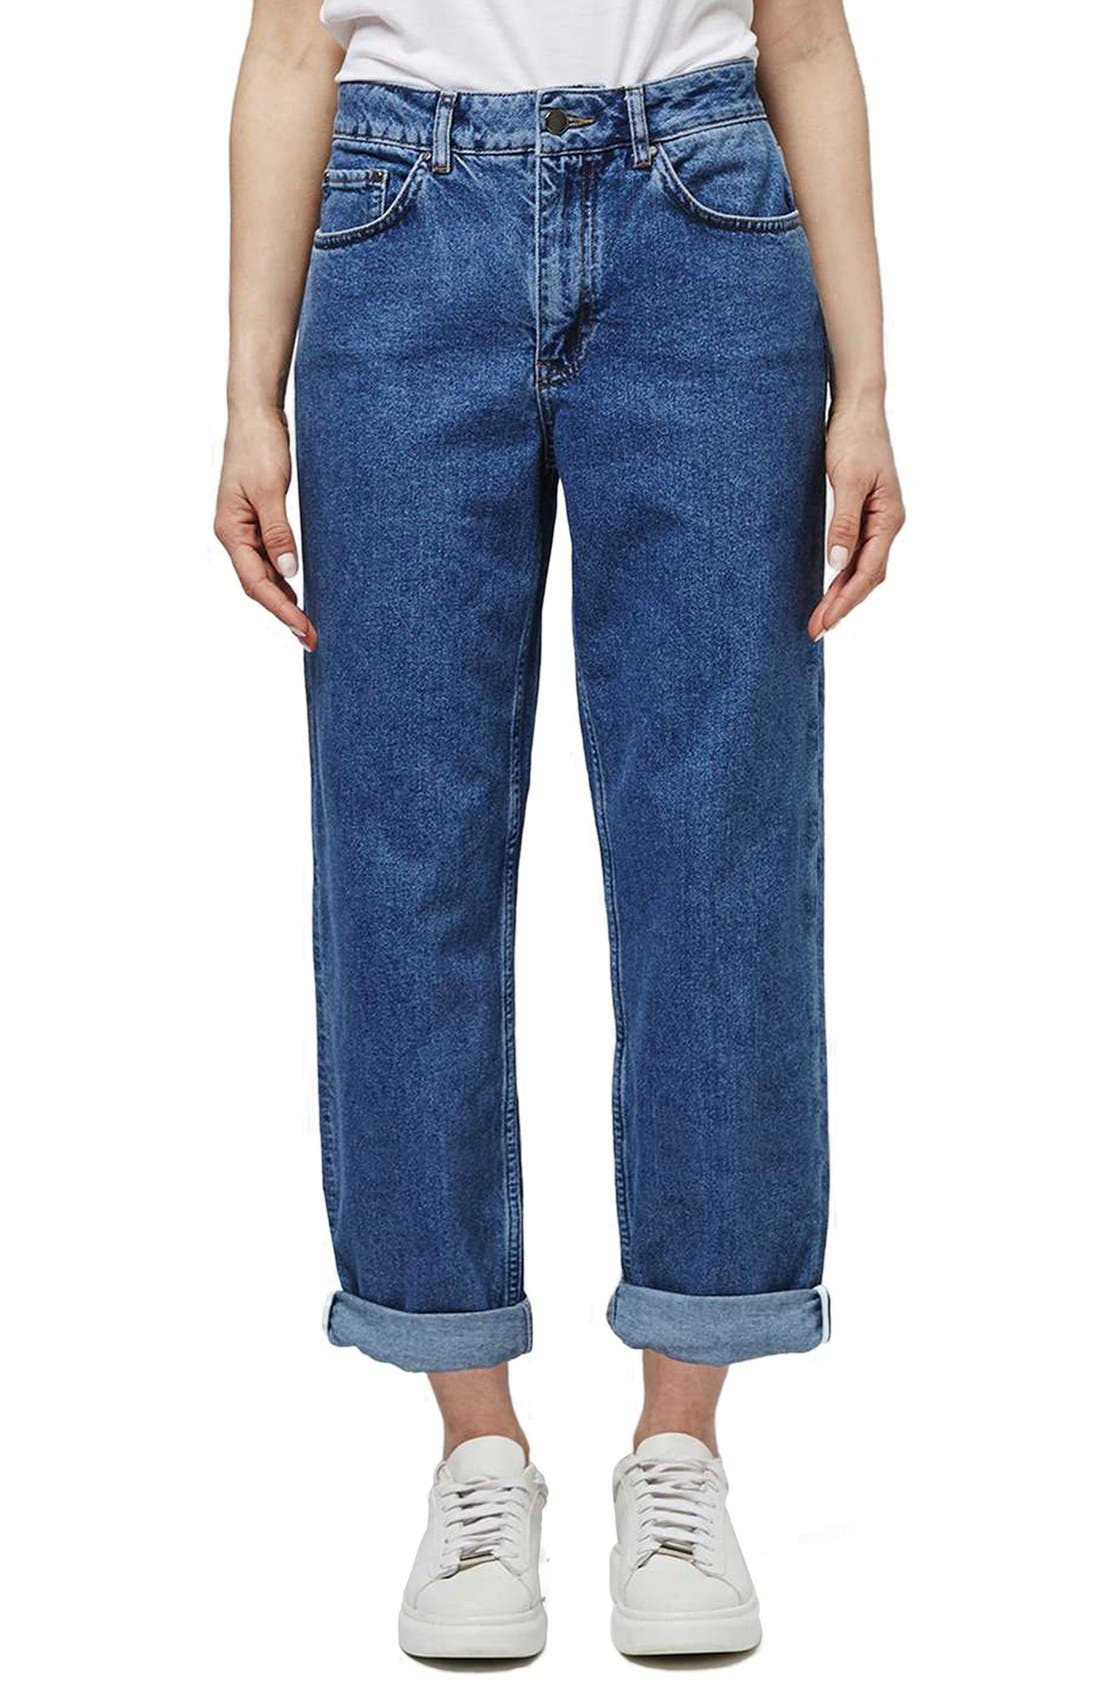 Alternate Image 1 Selected - Topshop Boutique High Rise Relaxed Boyfriend Jeans